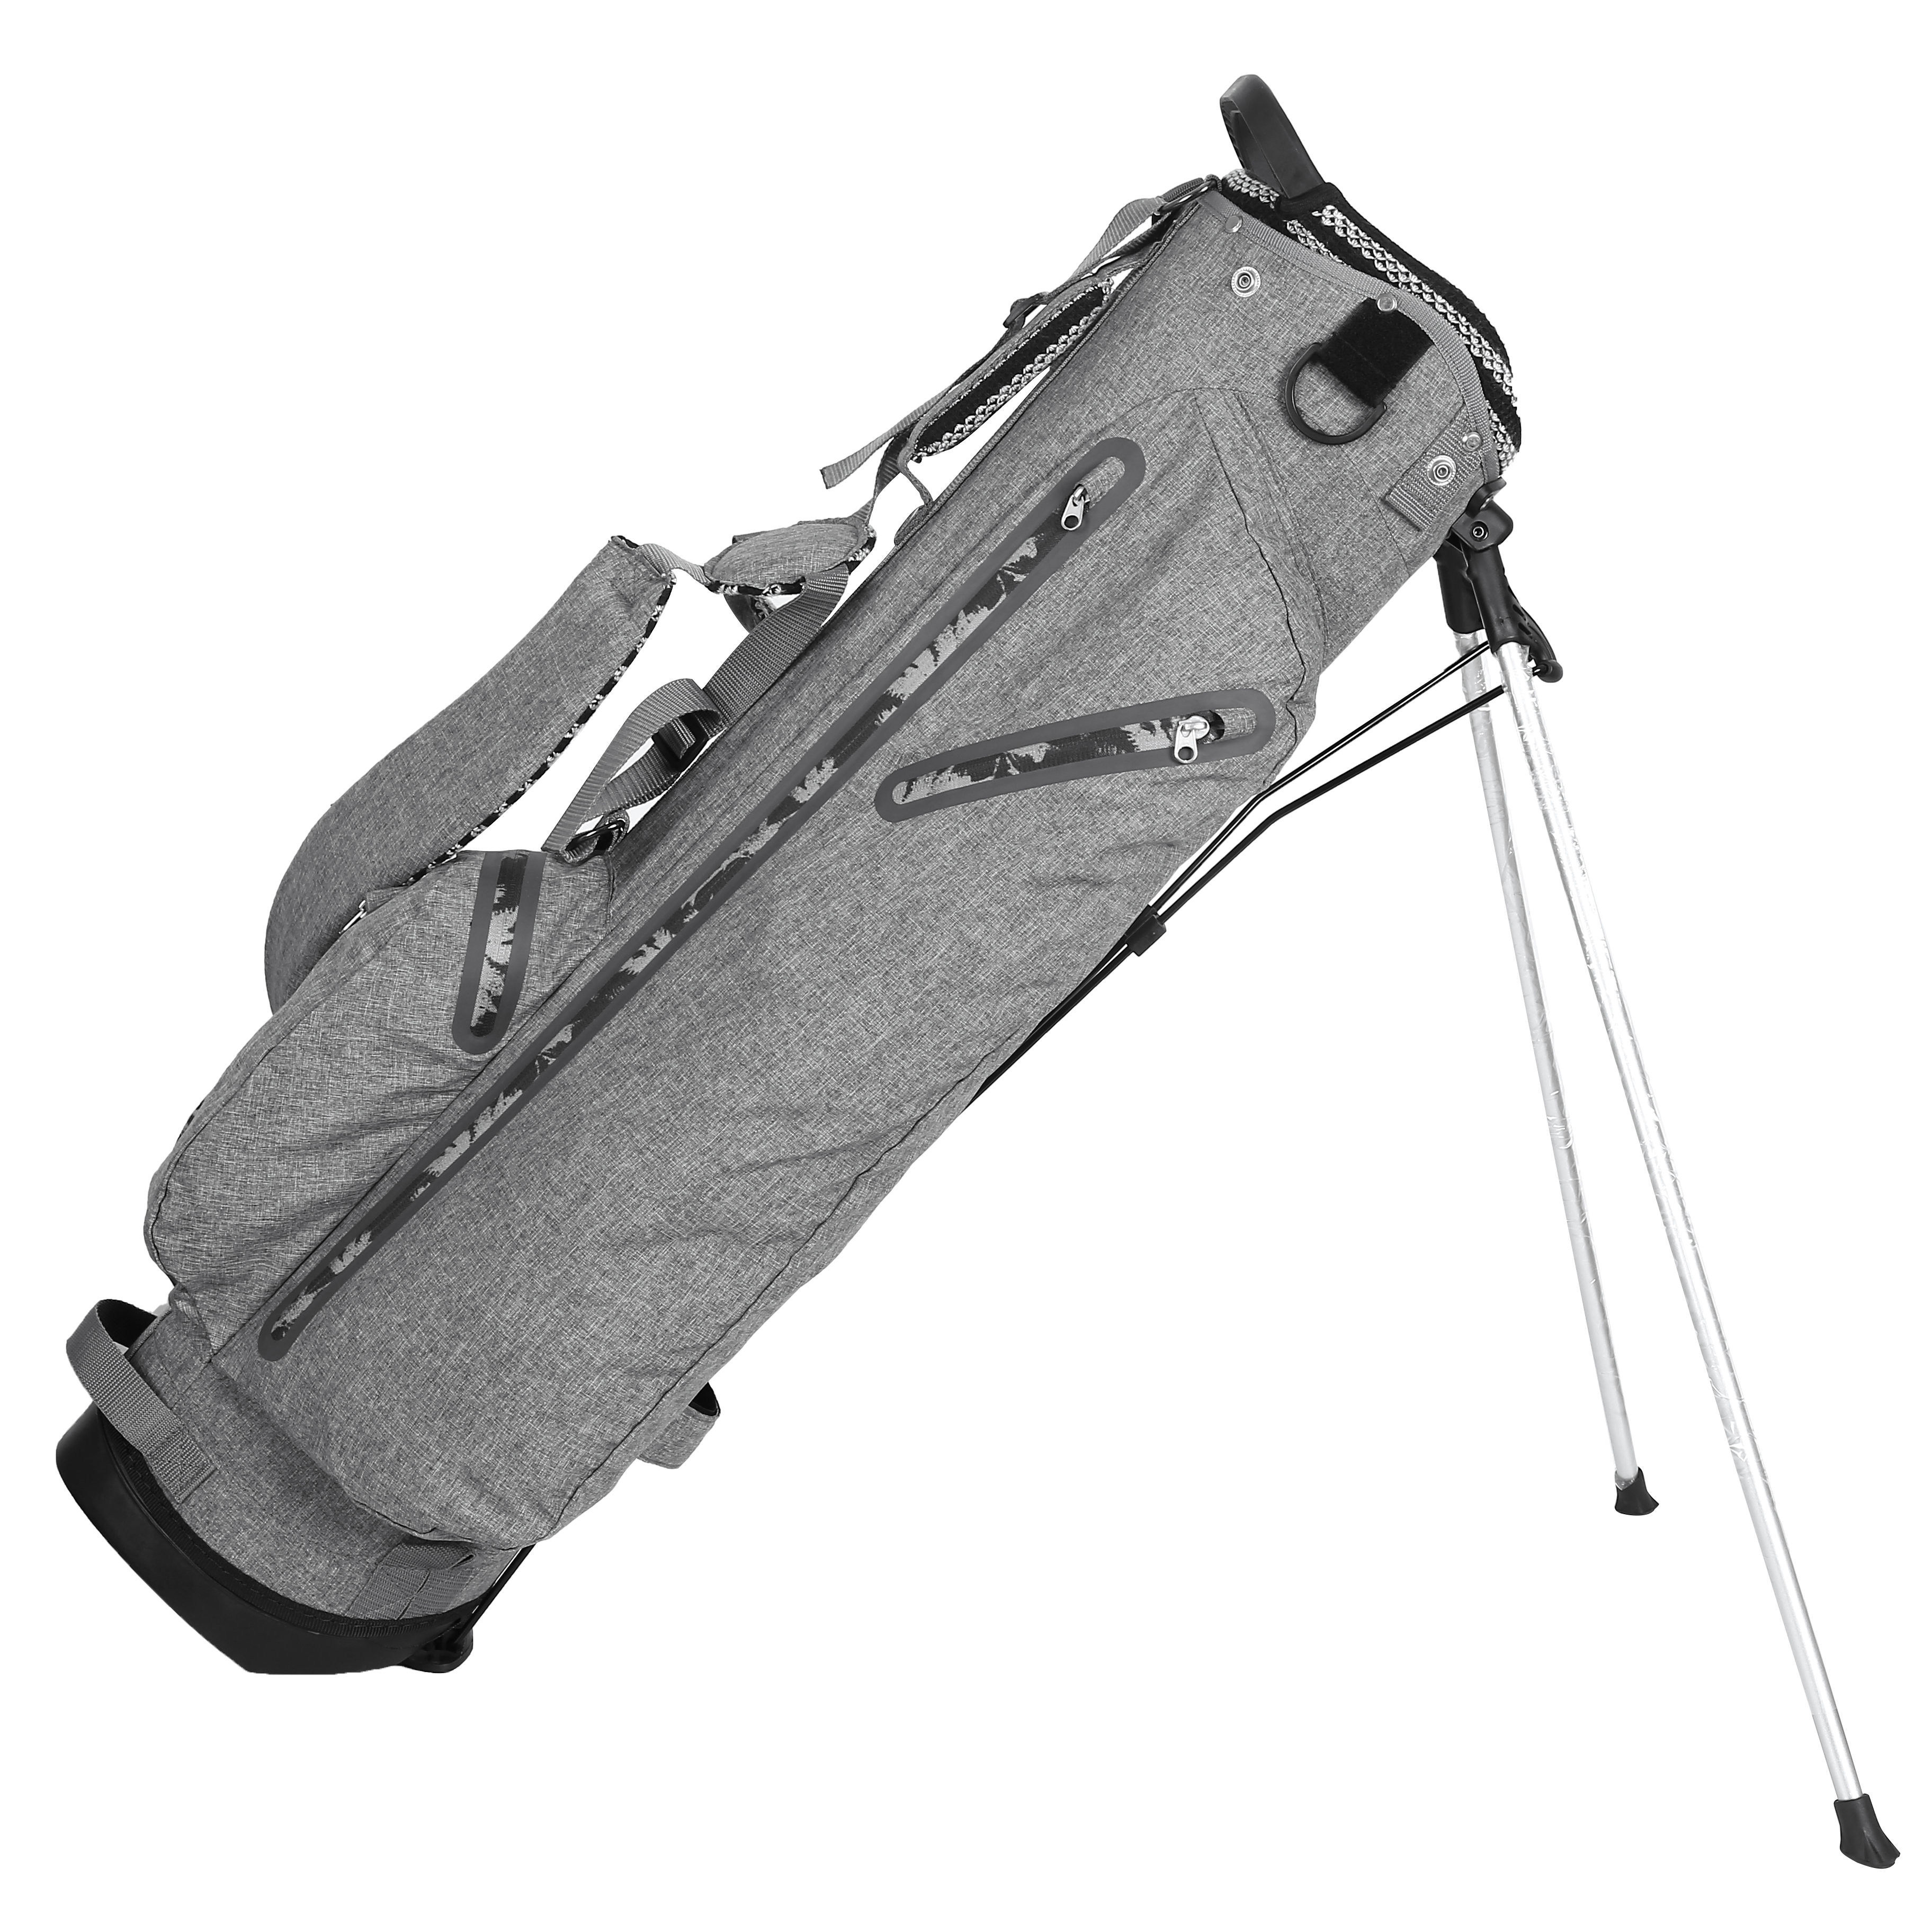 1.7KG light custom stand golf carry bag